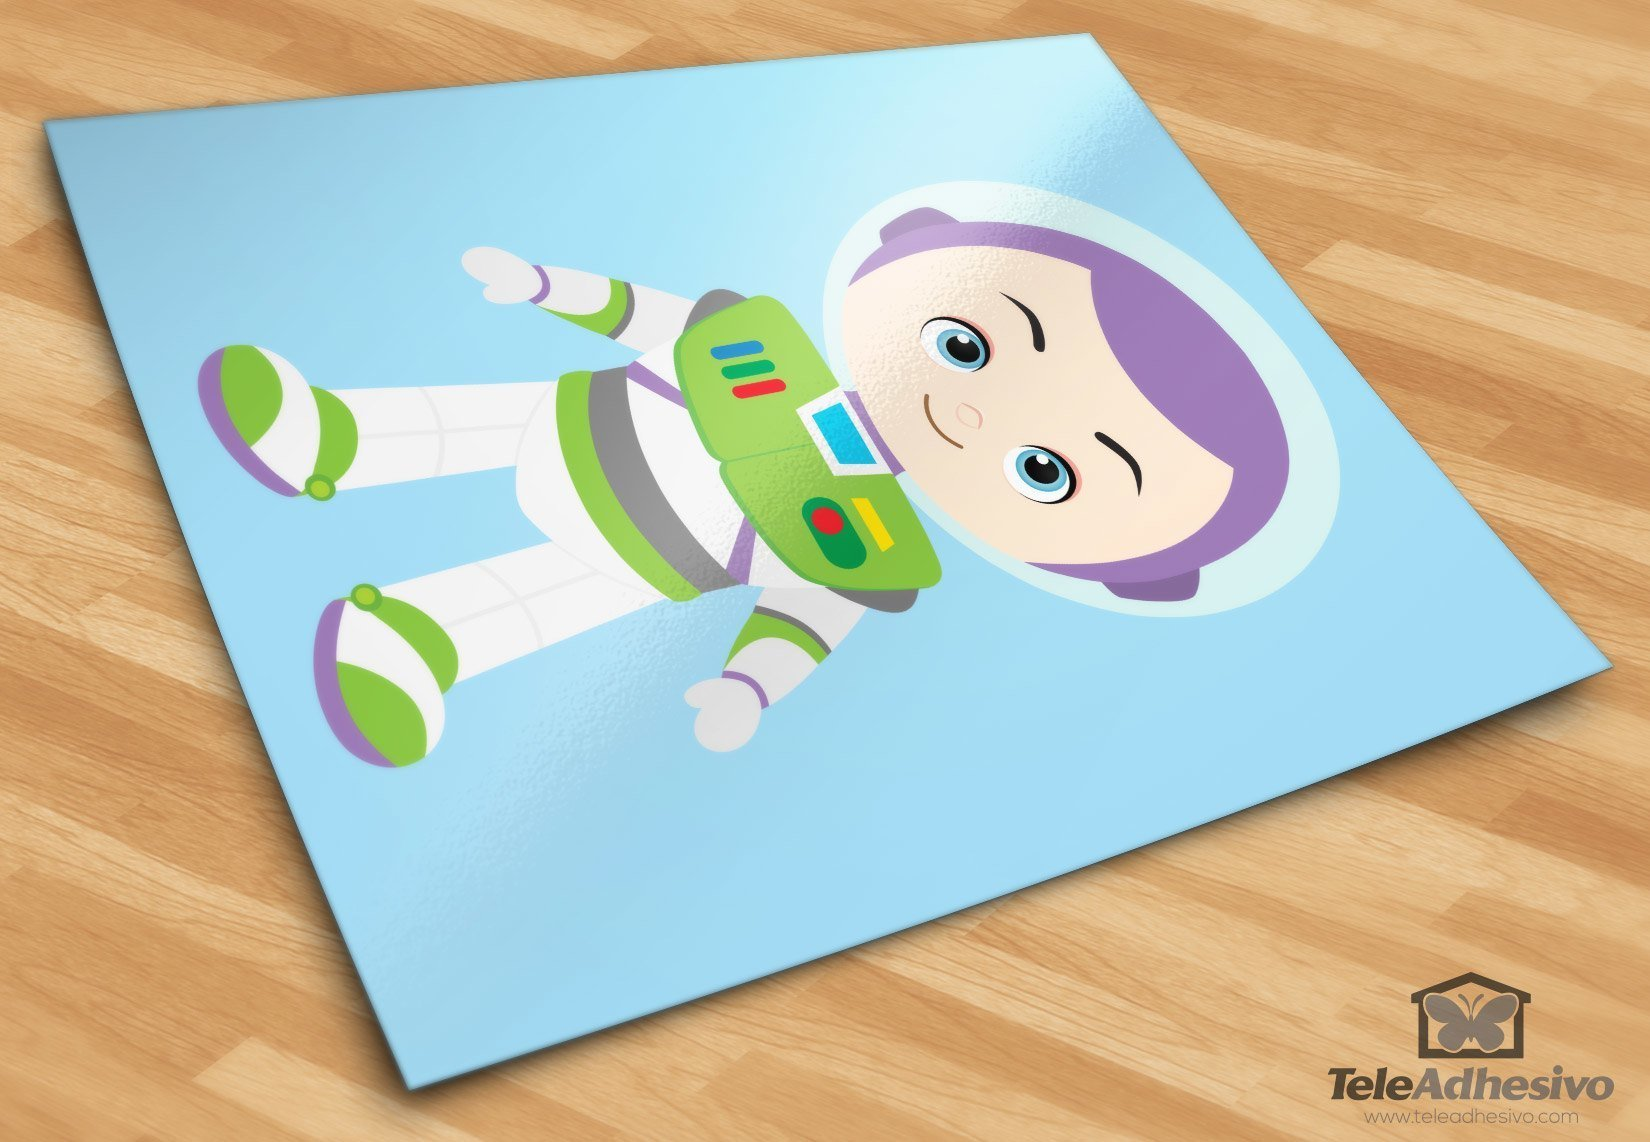 buzz lightyear toy story buzz lightyear room appliques